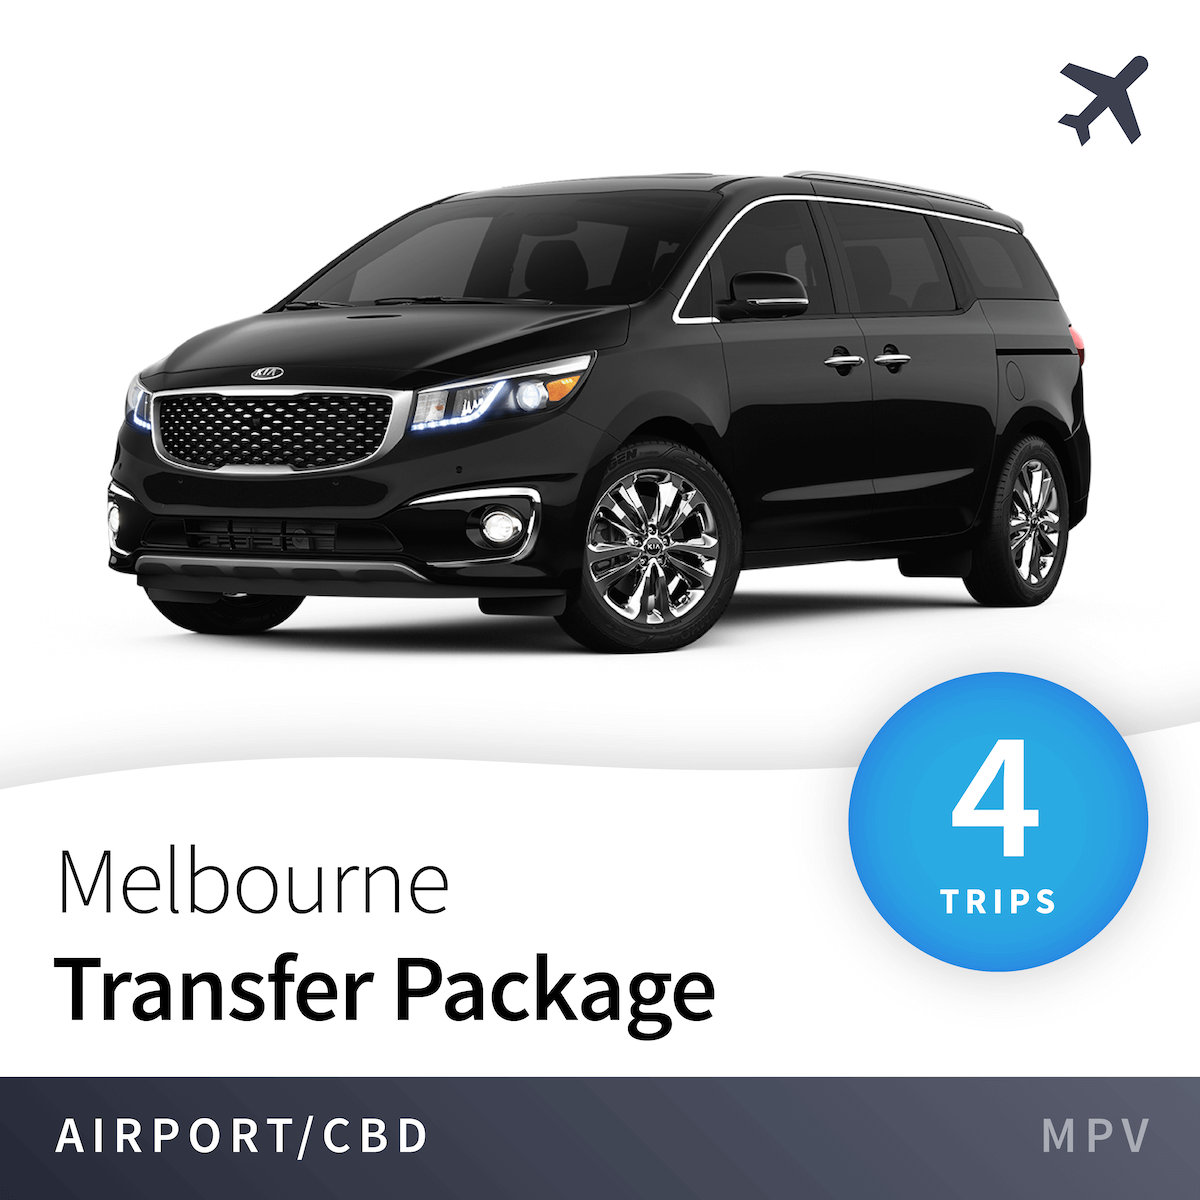 Melbourne Airport Transfer Package - MPV (4 Trips) 8